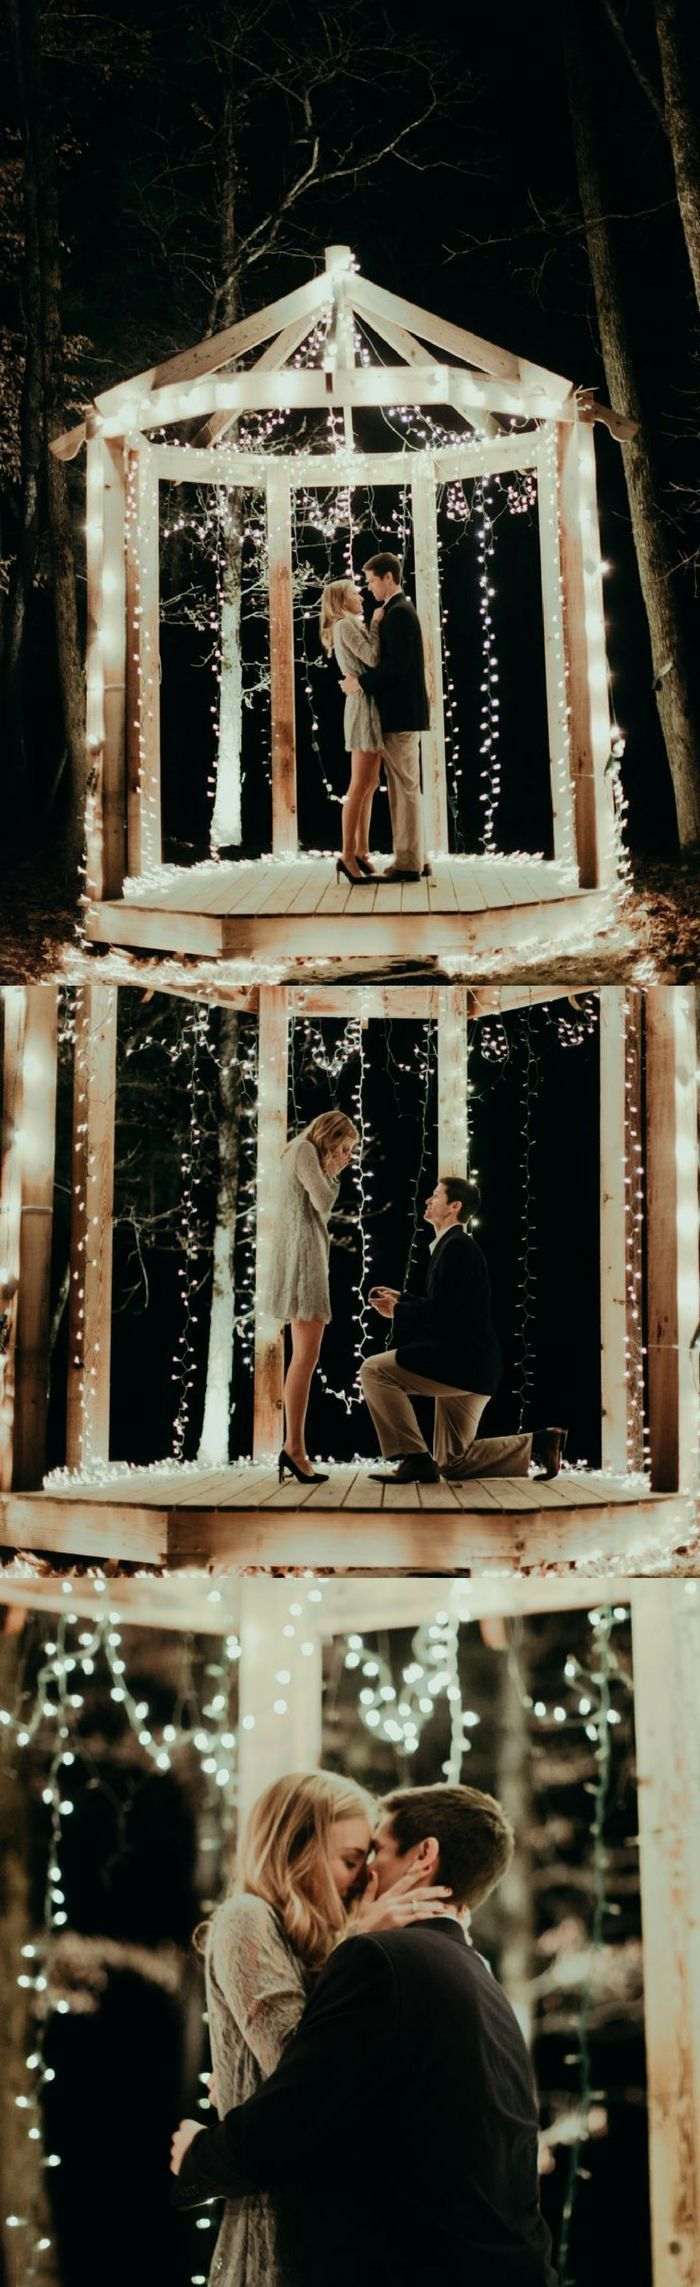 This holiday proposal is so romantic and full of love!